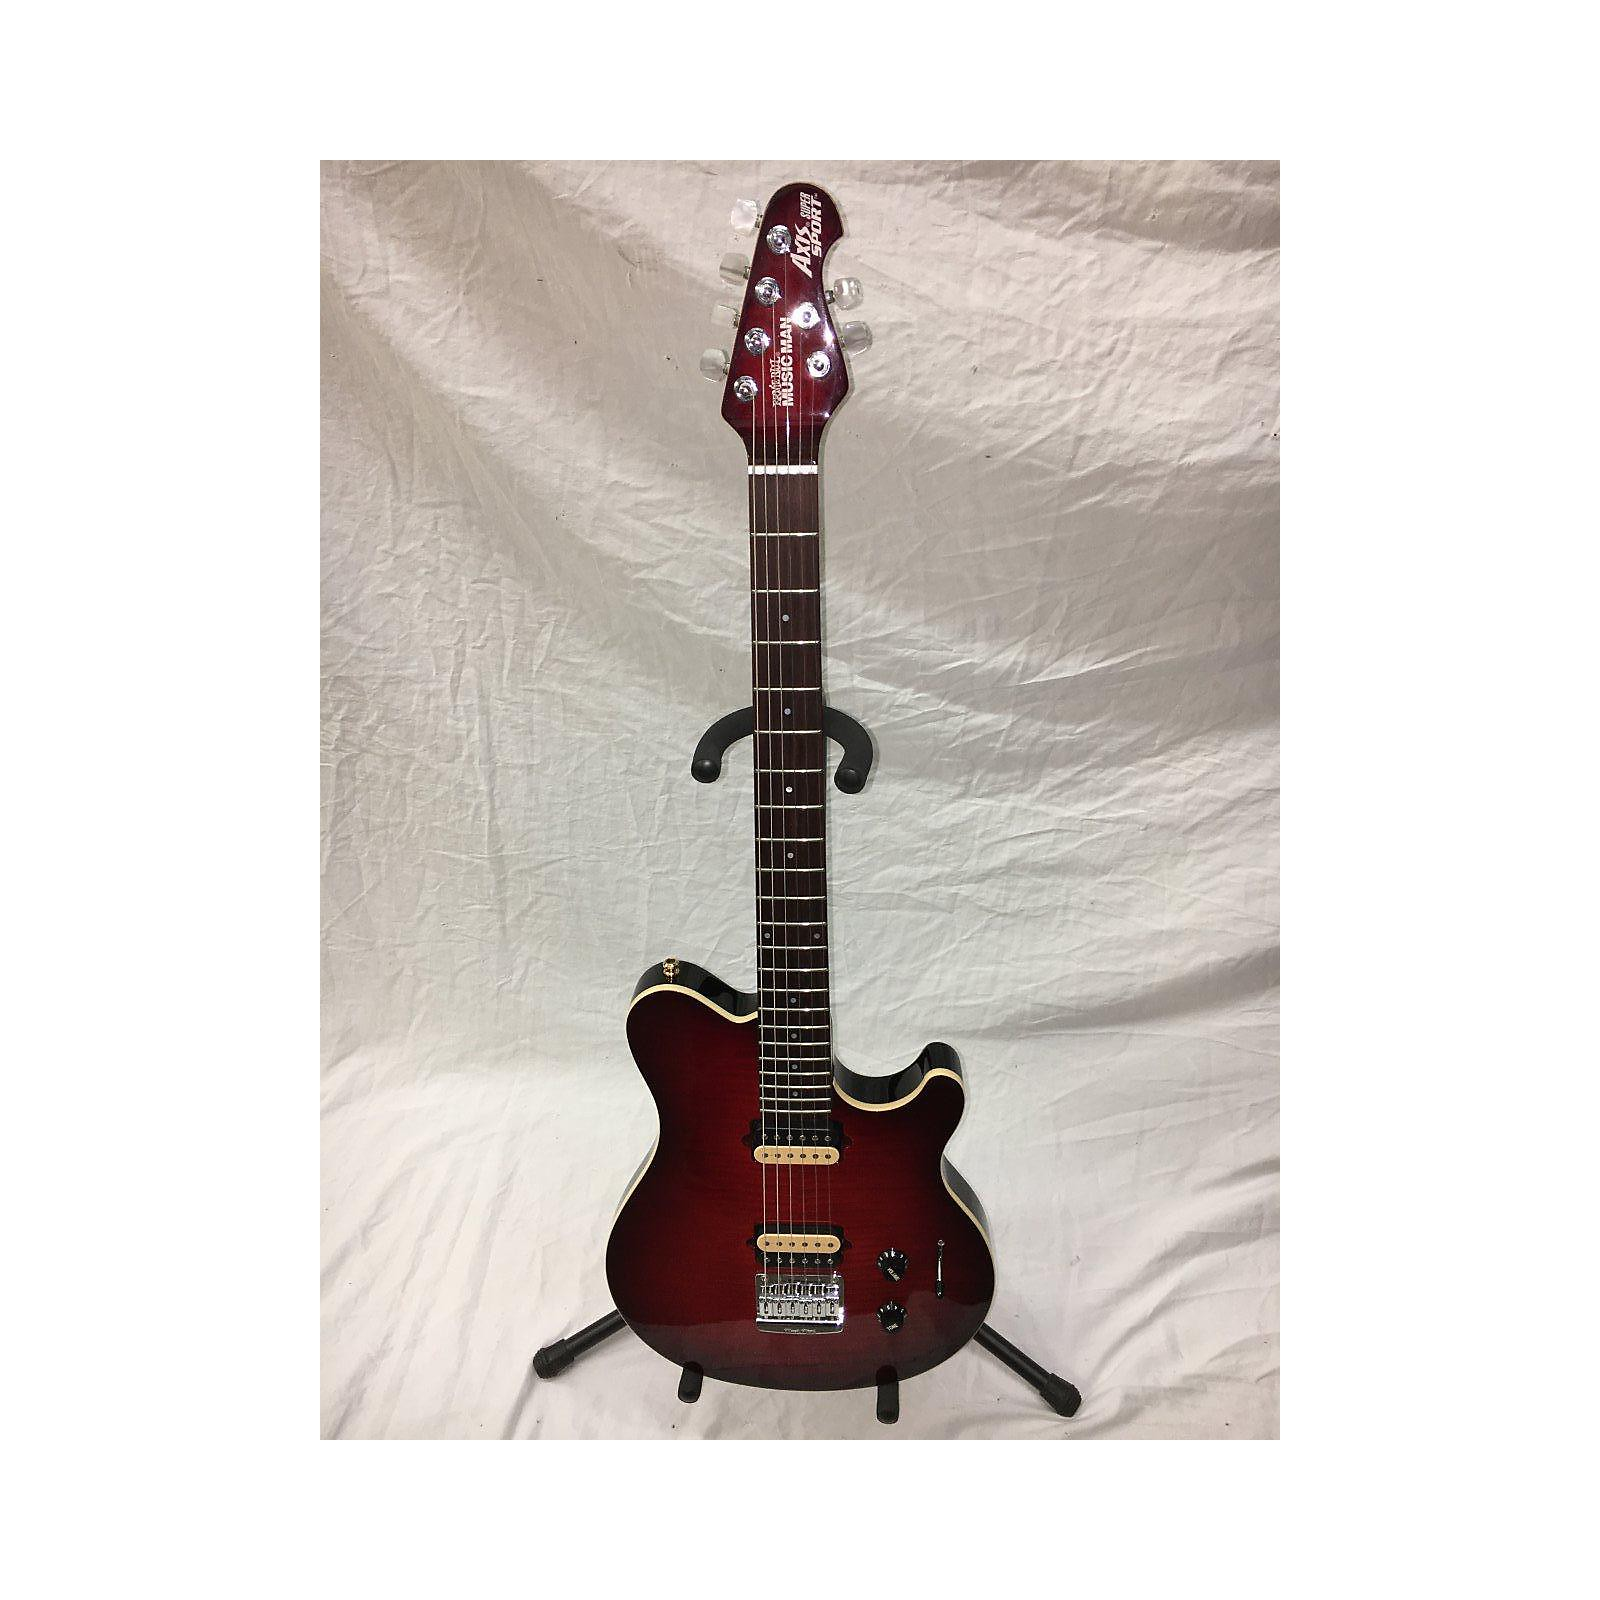 Ernie Ball Music Man Ball Family Reserve Axis HARDTAIL Solid Body Electric Guitar